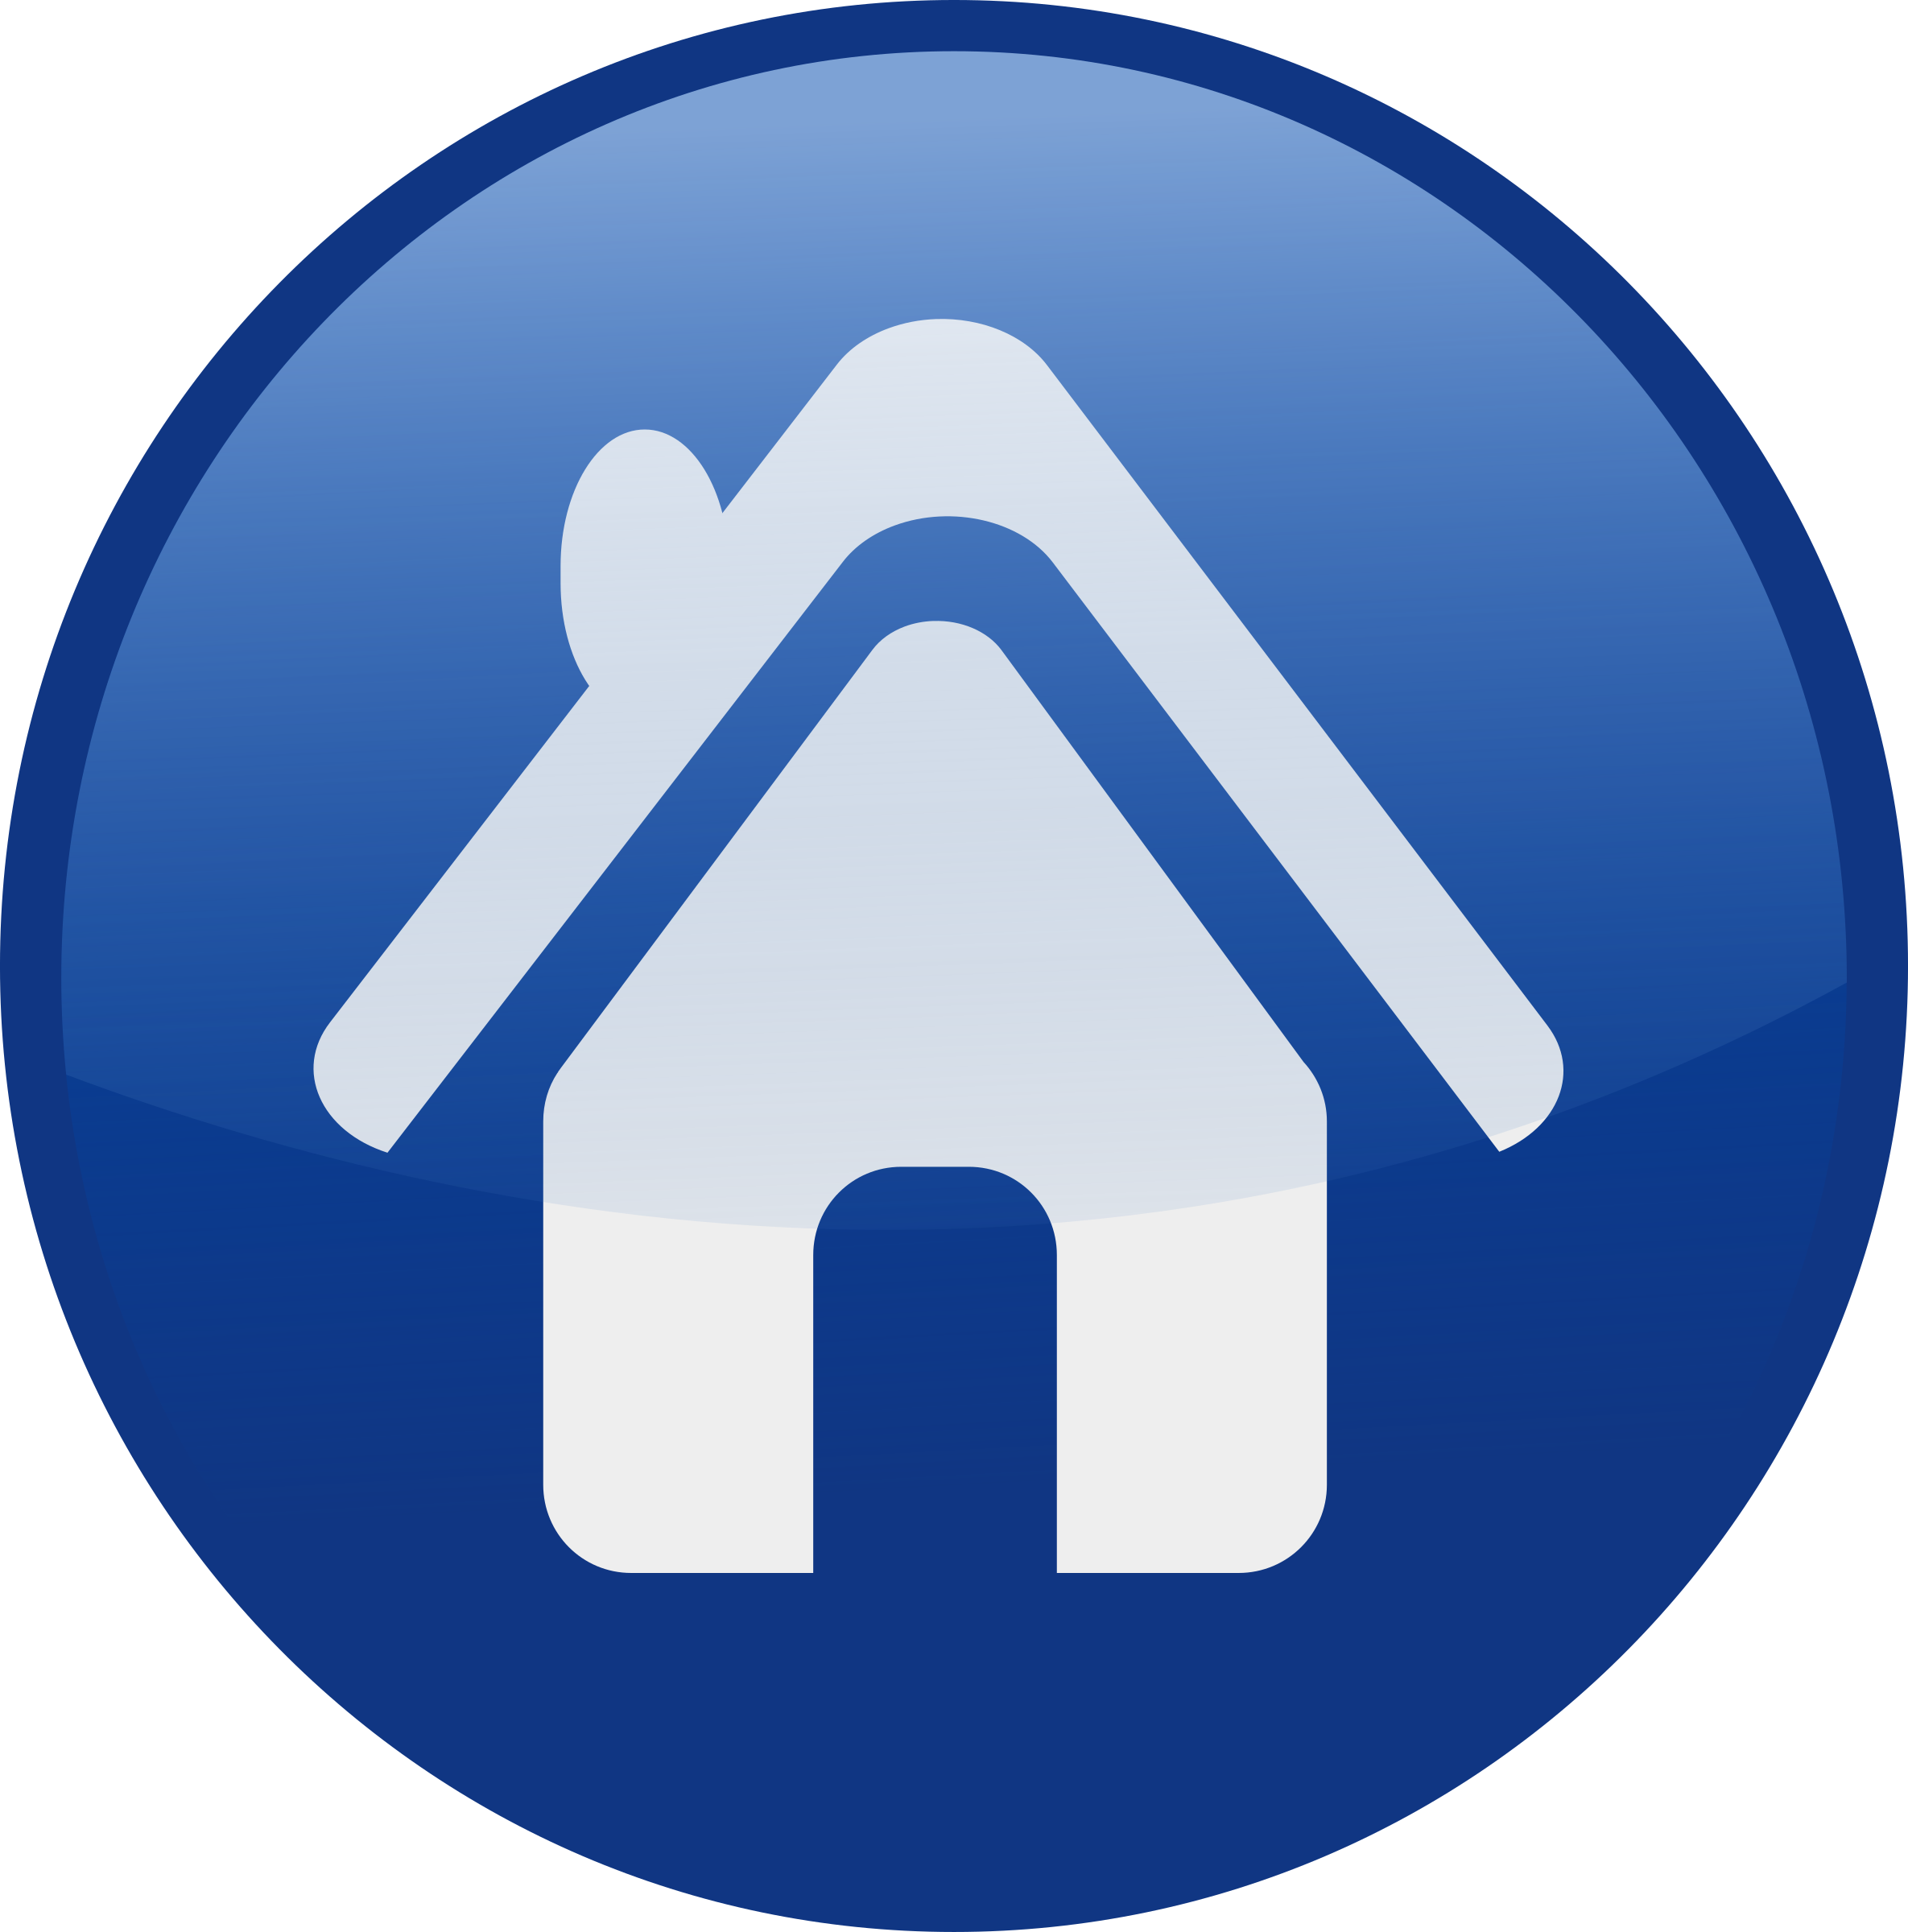 House blue clipart clip royalty free library Clipart - house-blue clip royalty free library